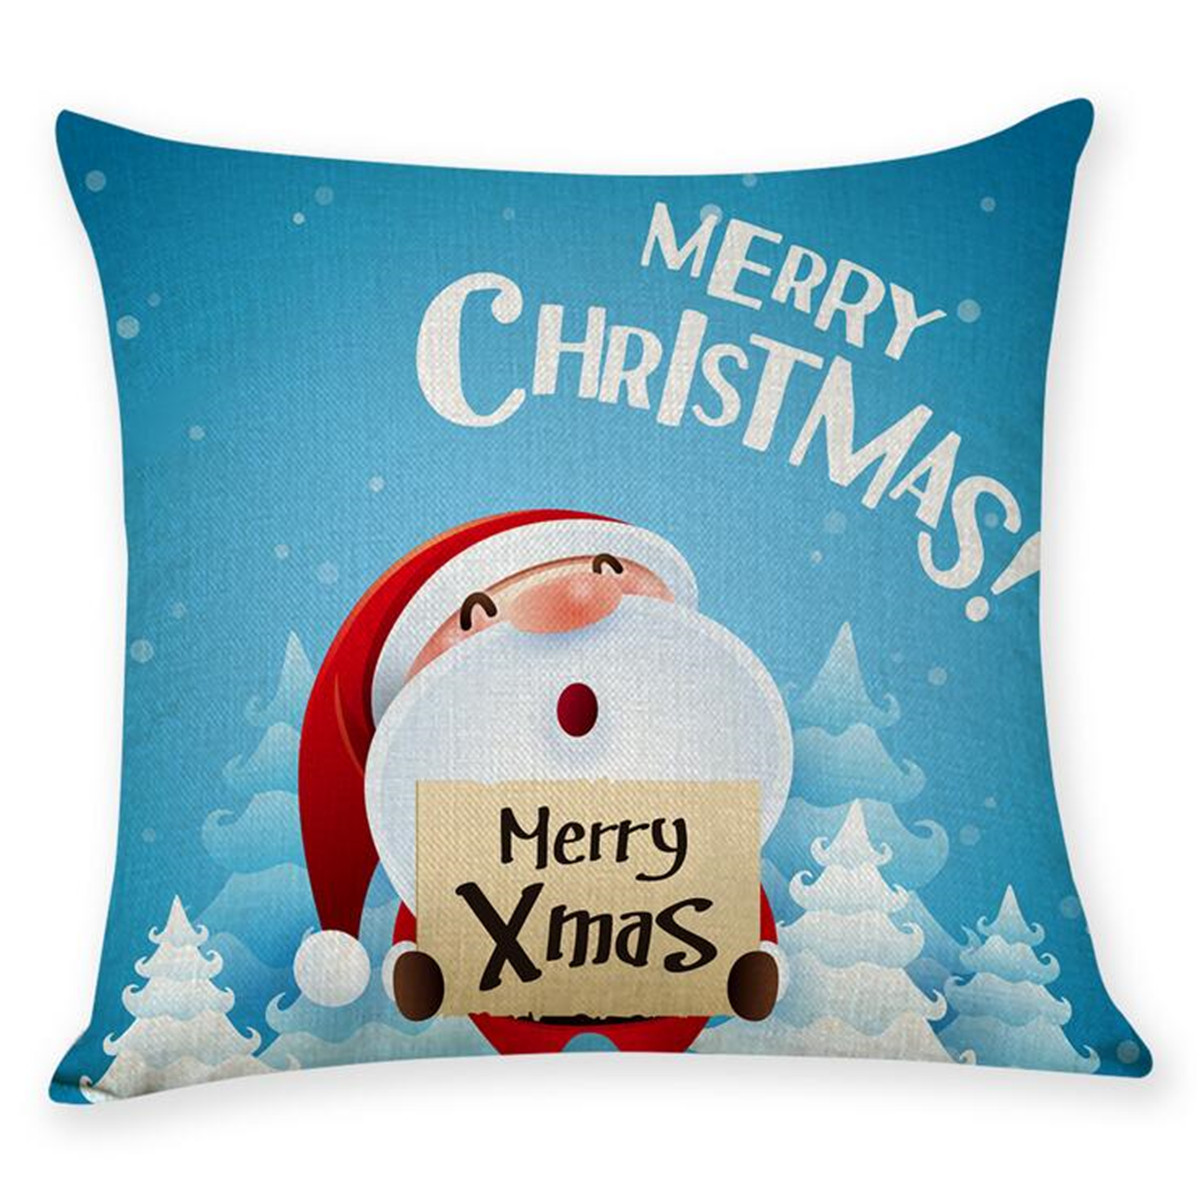 Christmas Pillow Covers Decorations 18x18 Blue Snowflake Printing Throw Pillowcase Solid Square Back Cushion Case for Couch Sofa Pad Set Indoor Outdoor Home Decor